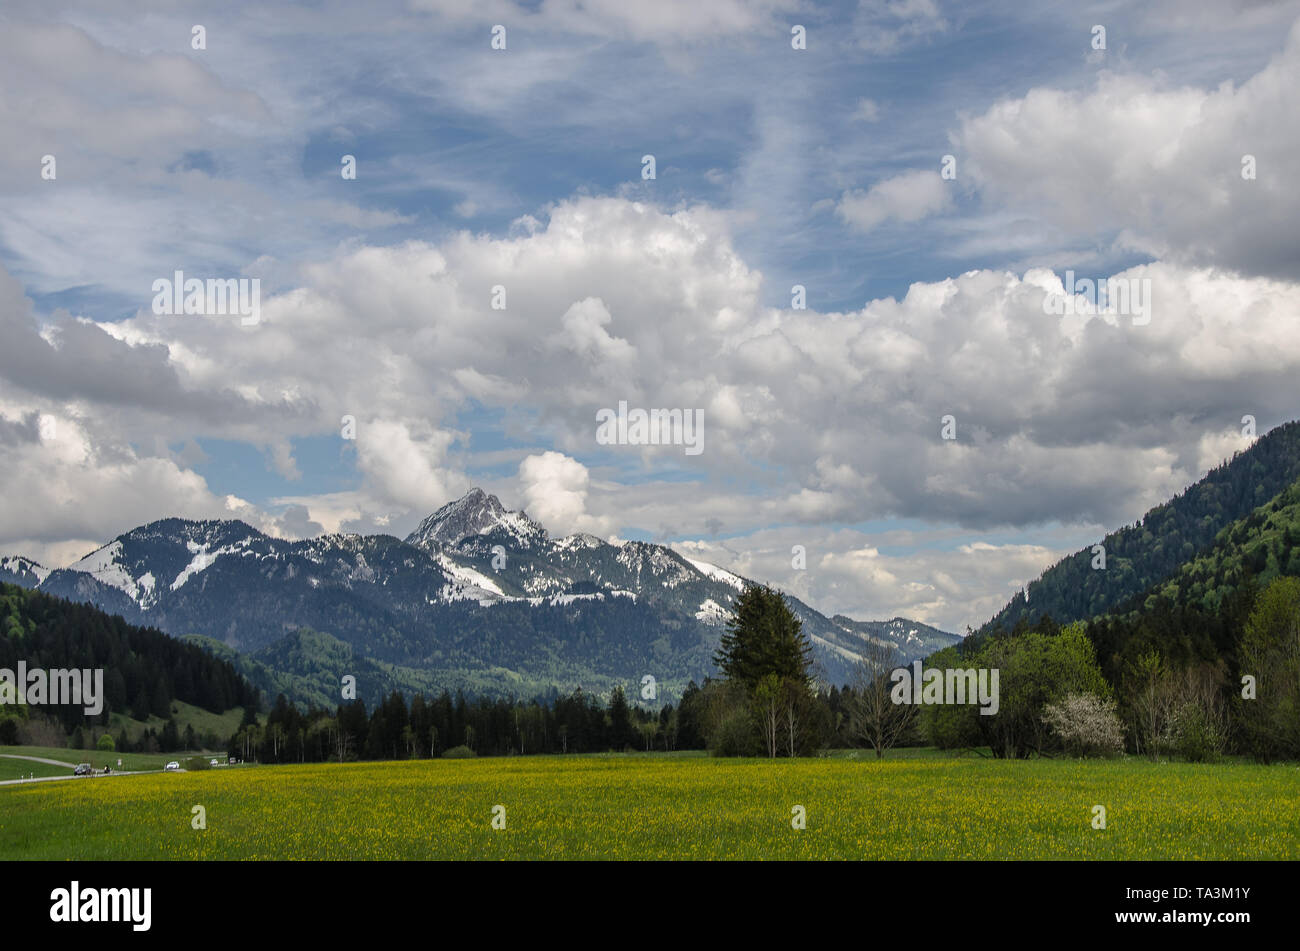 The imposing silhouette of 'Wendelstein' can  be discerned from a long way off. The  mountain is 1838 m high and has become a popular destination. - Stock Image